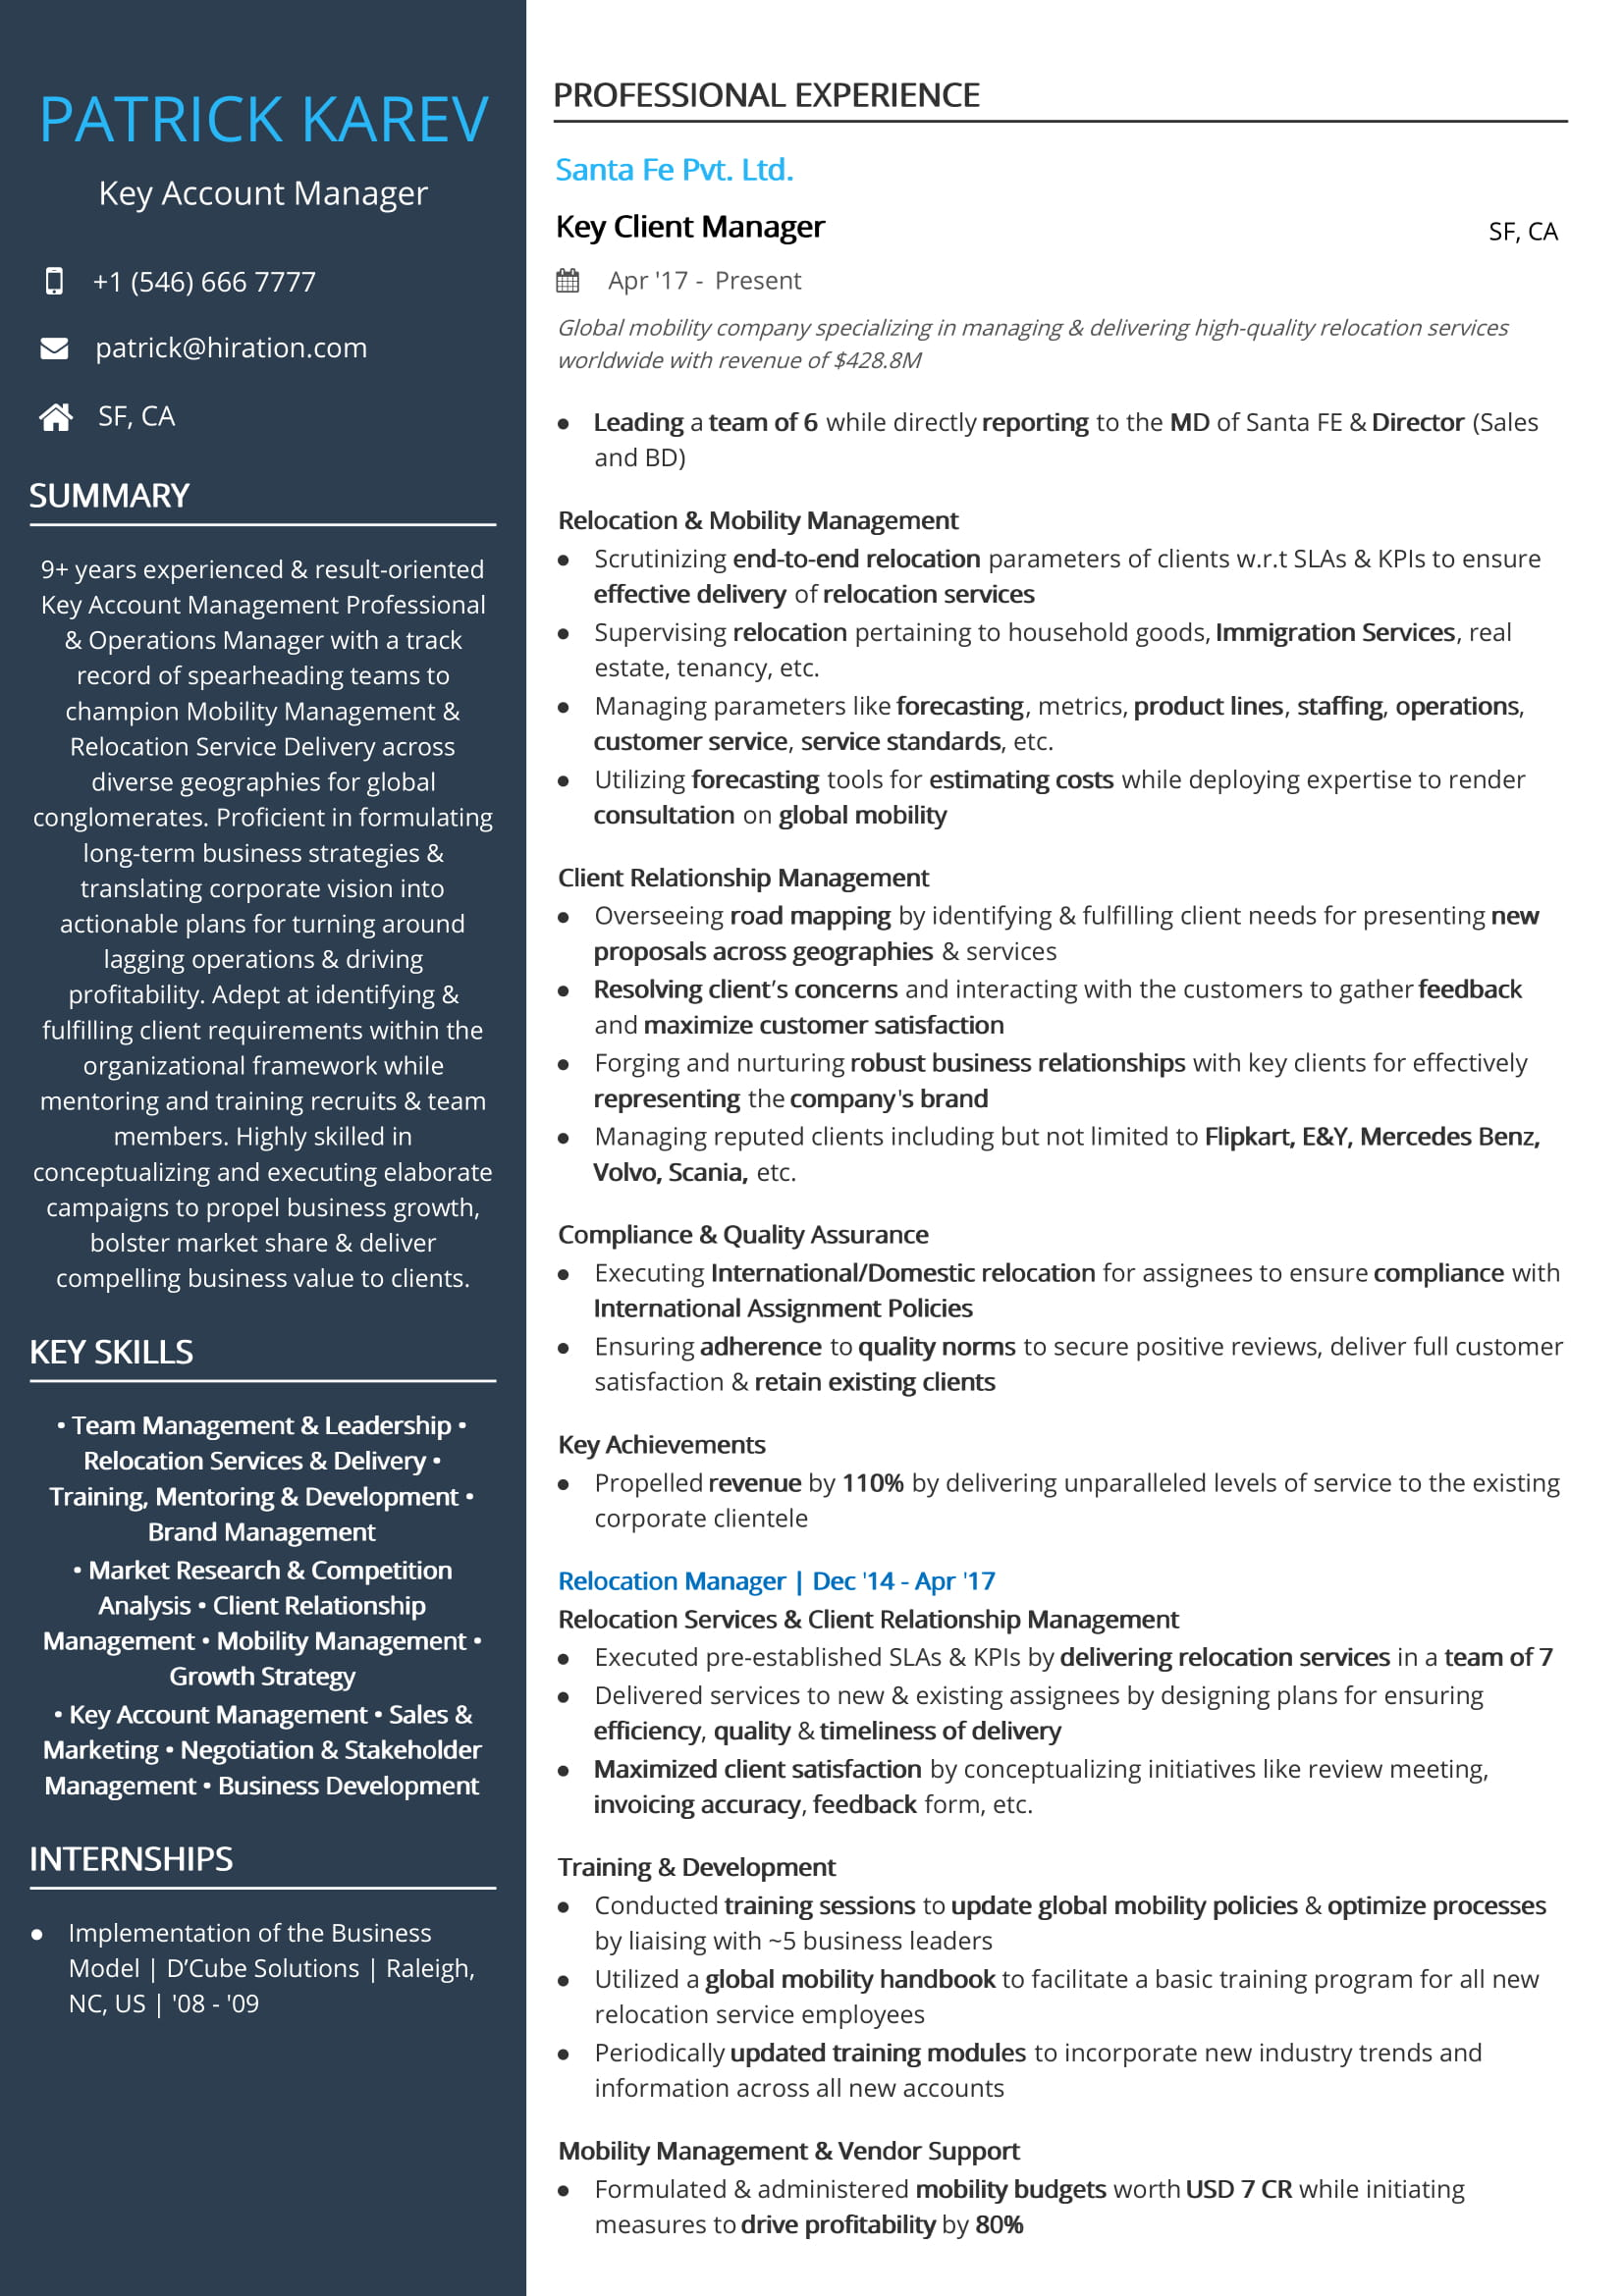 Key Account Manager Resume Sample By Hiration